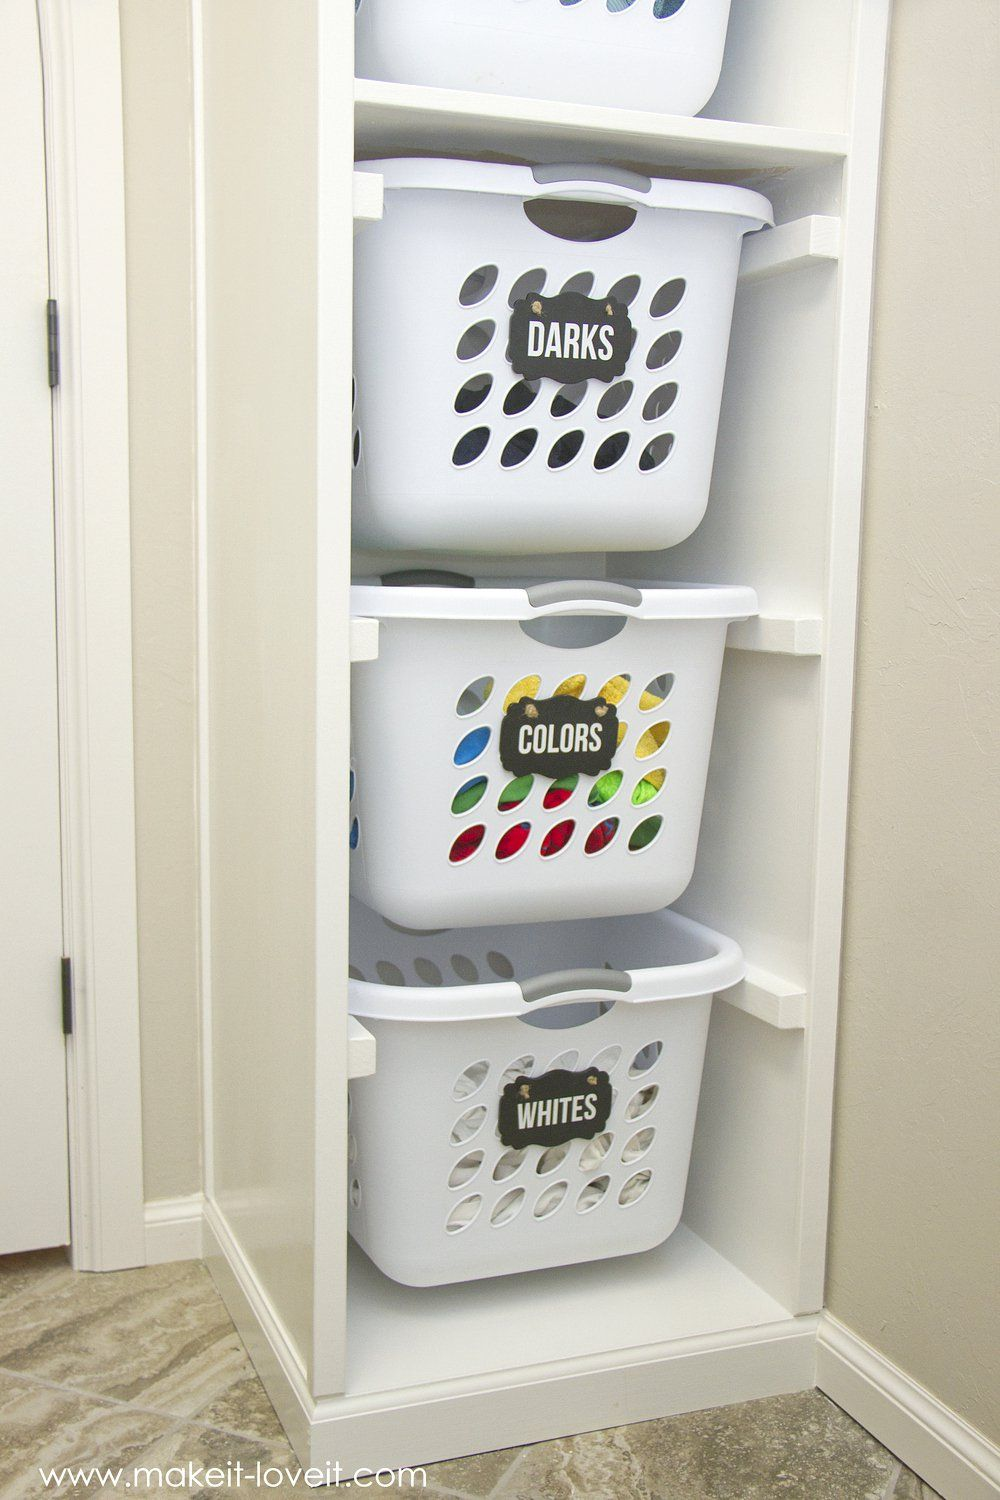 Utility Room Design Ideas view in gallery basement laundry Diy Laundry Basket Organizer Built In Make It And Love